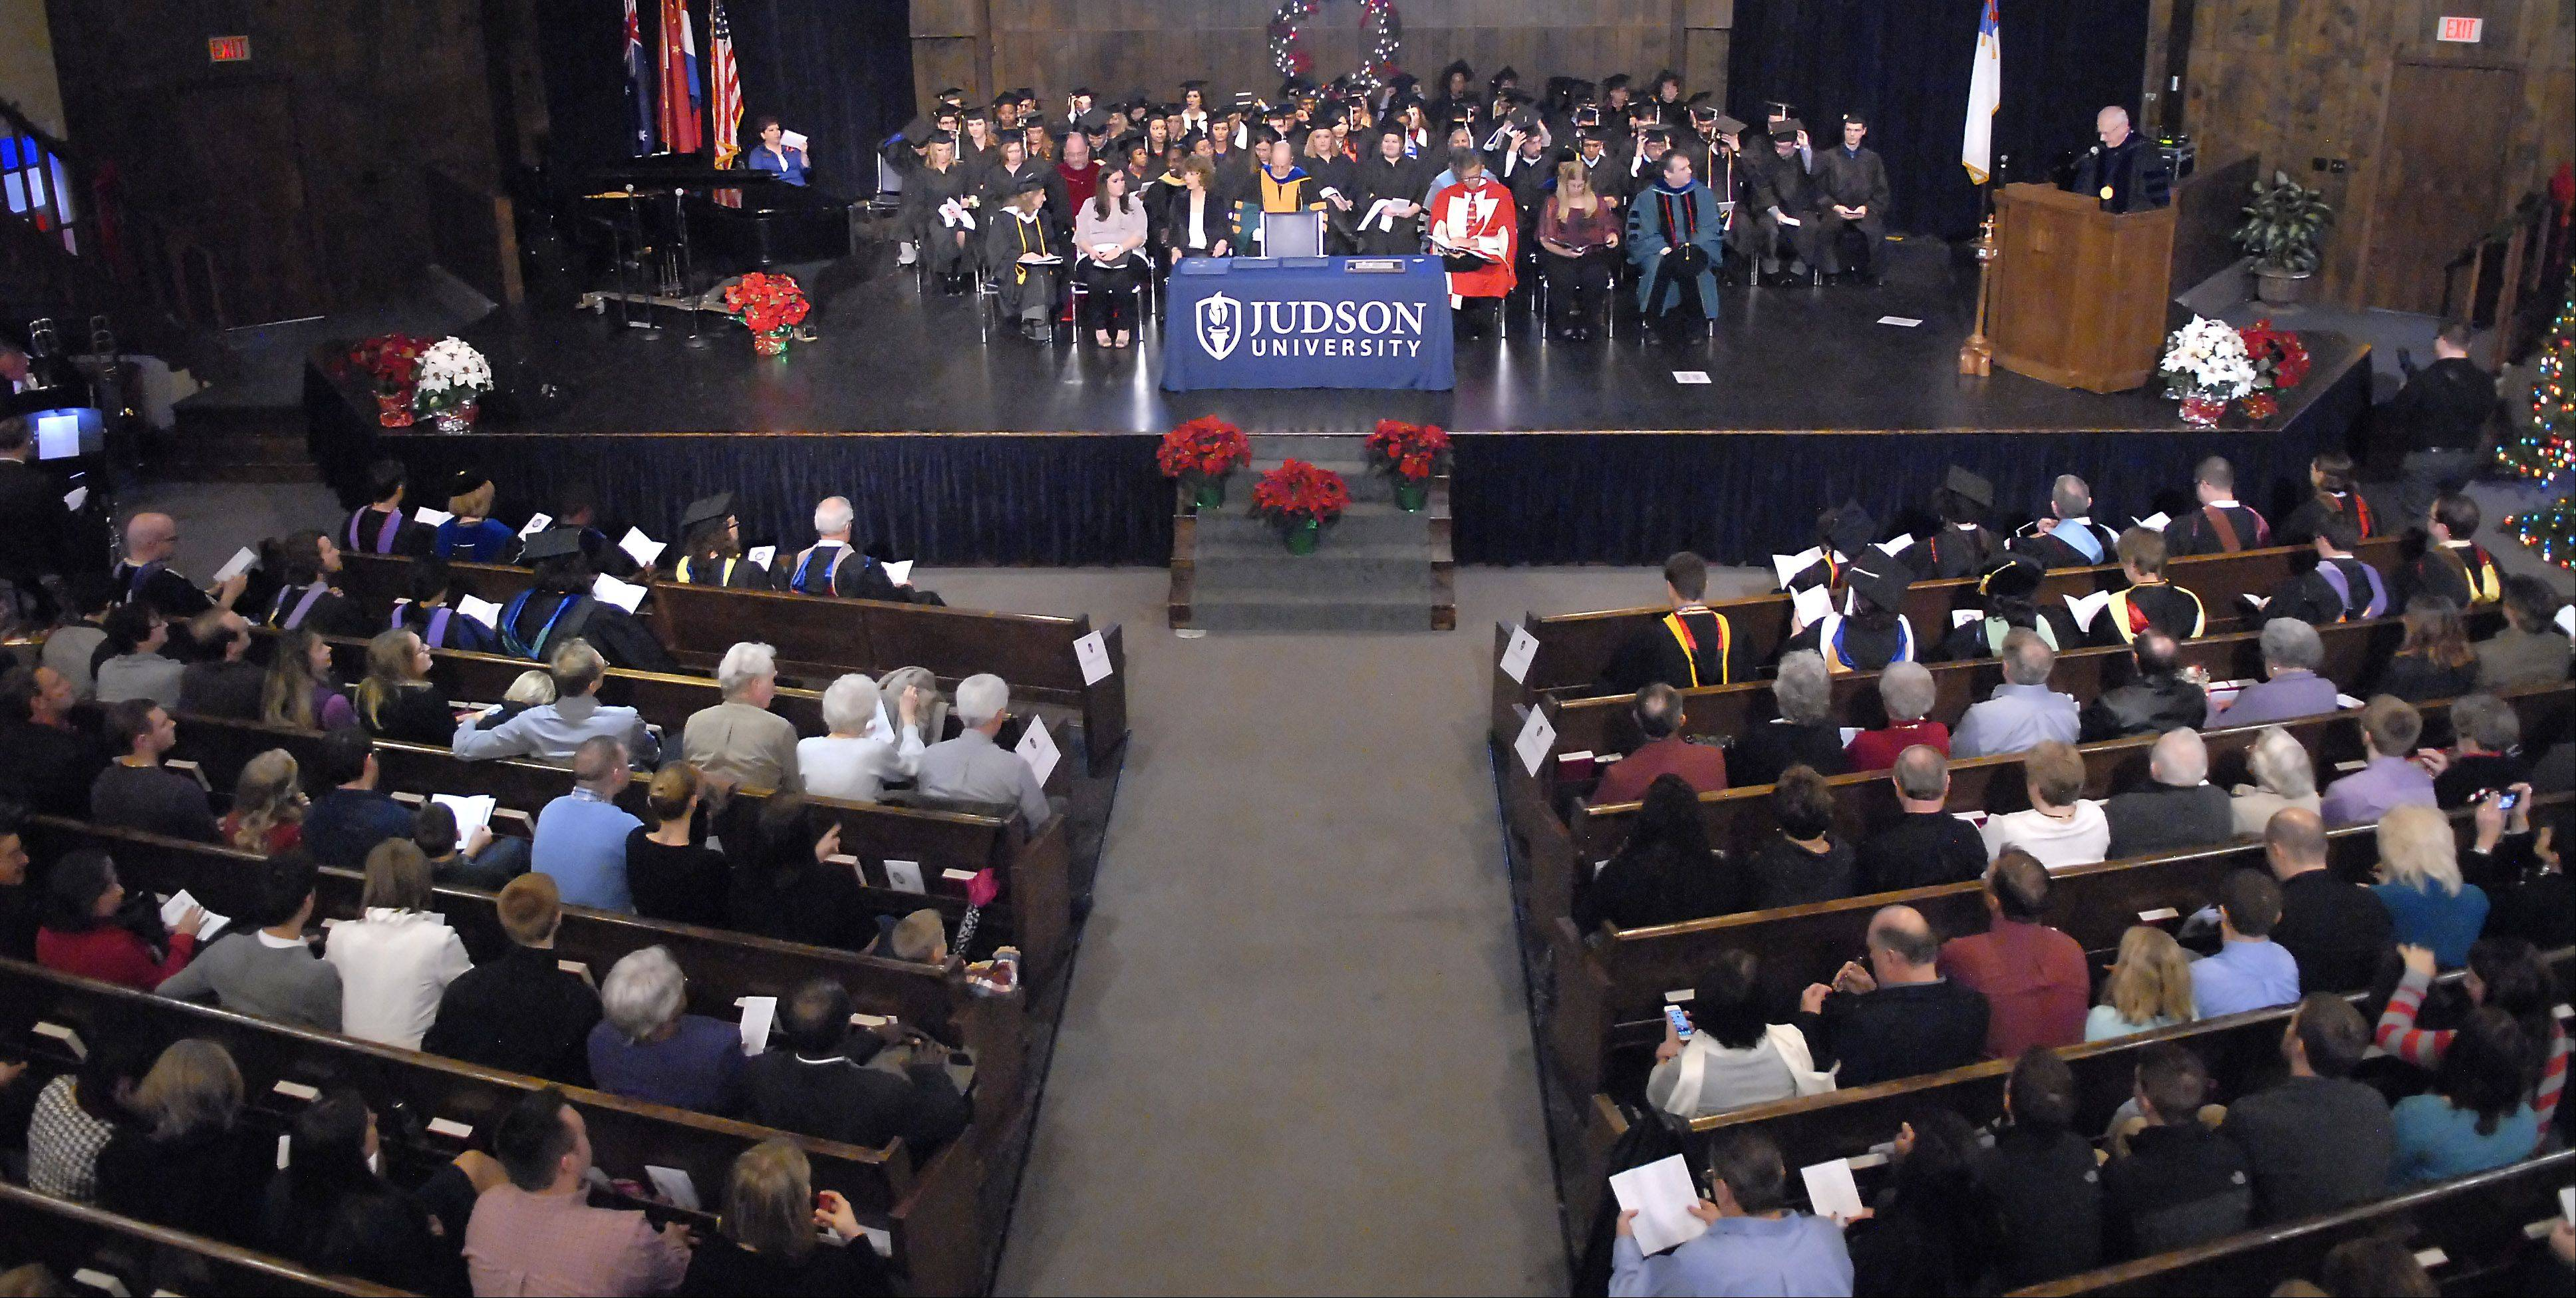 Laura Stoecker/lstoecker@dailyherald.comJudson University's morning commencement ceremony in the campus chapel in Elgin on Saturday, December 15.